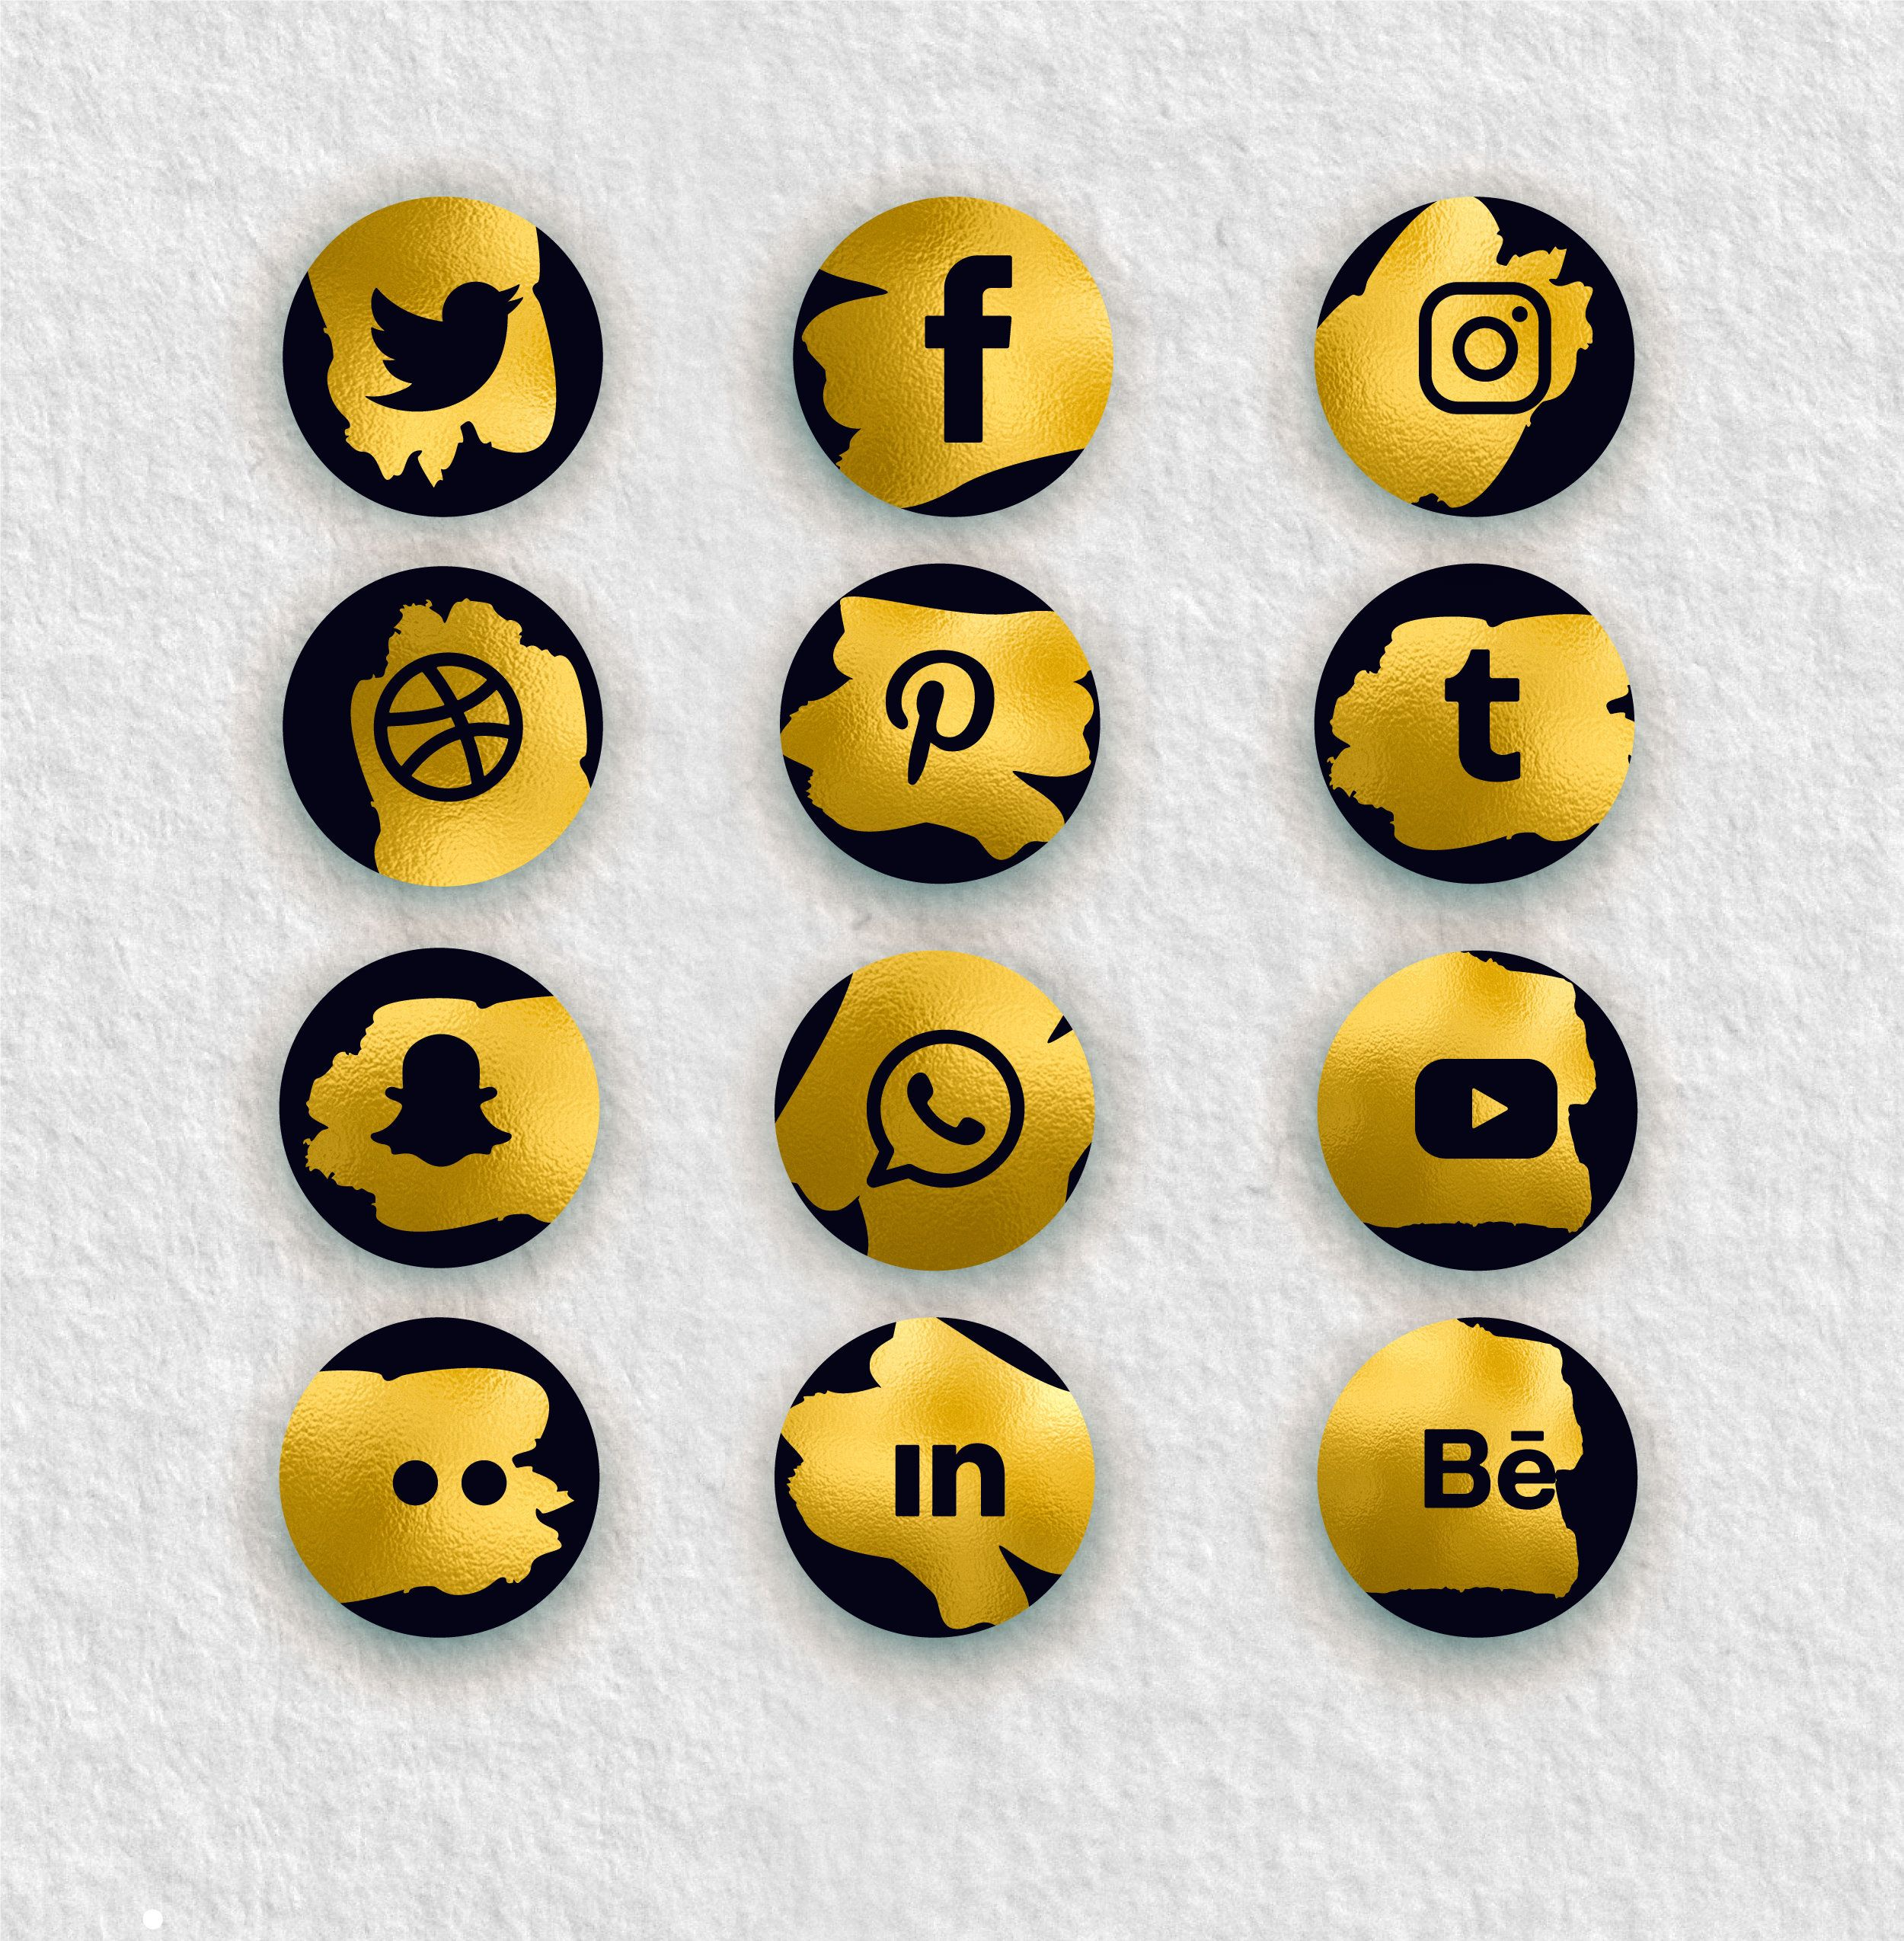 Golden Social Media Icons Set. Gold Foil Icons Gold